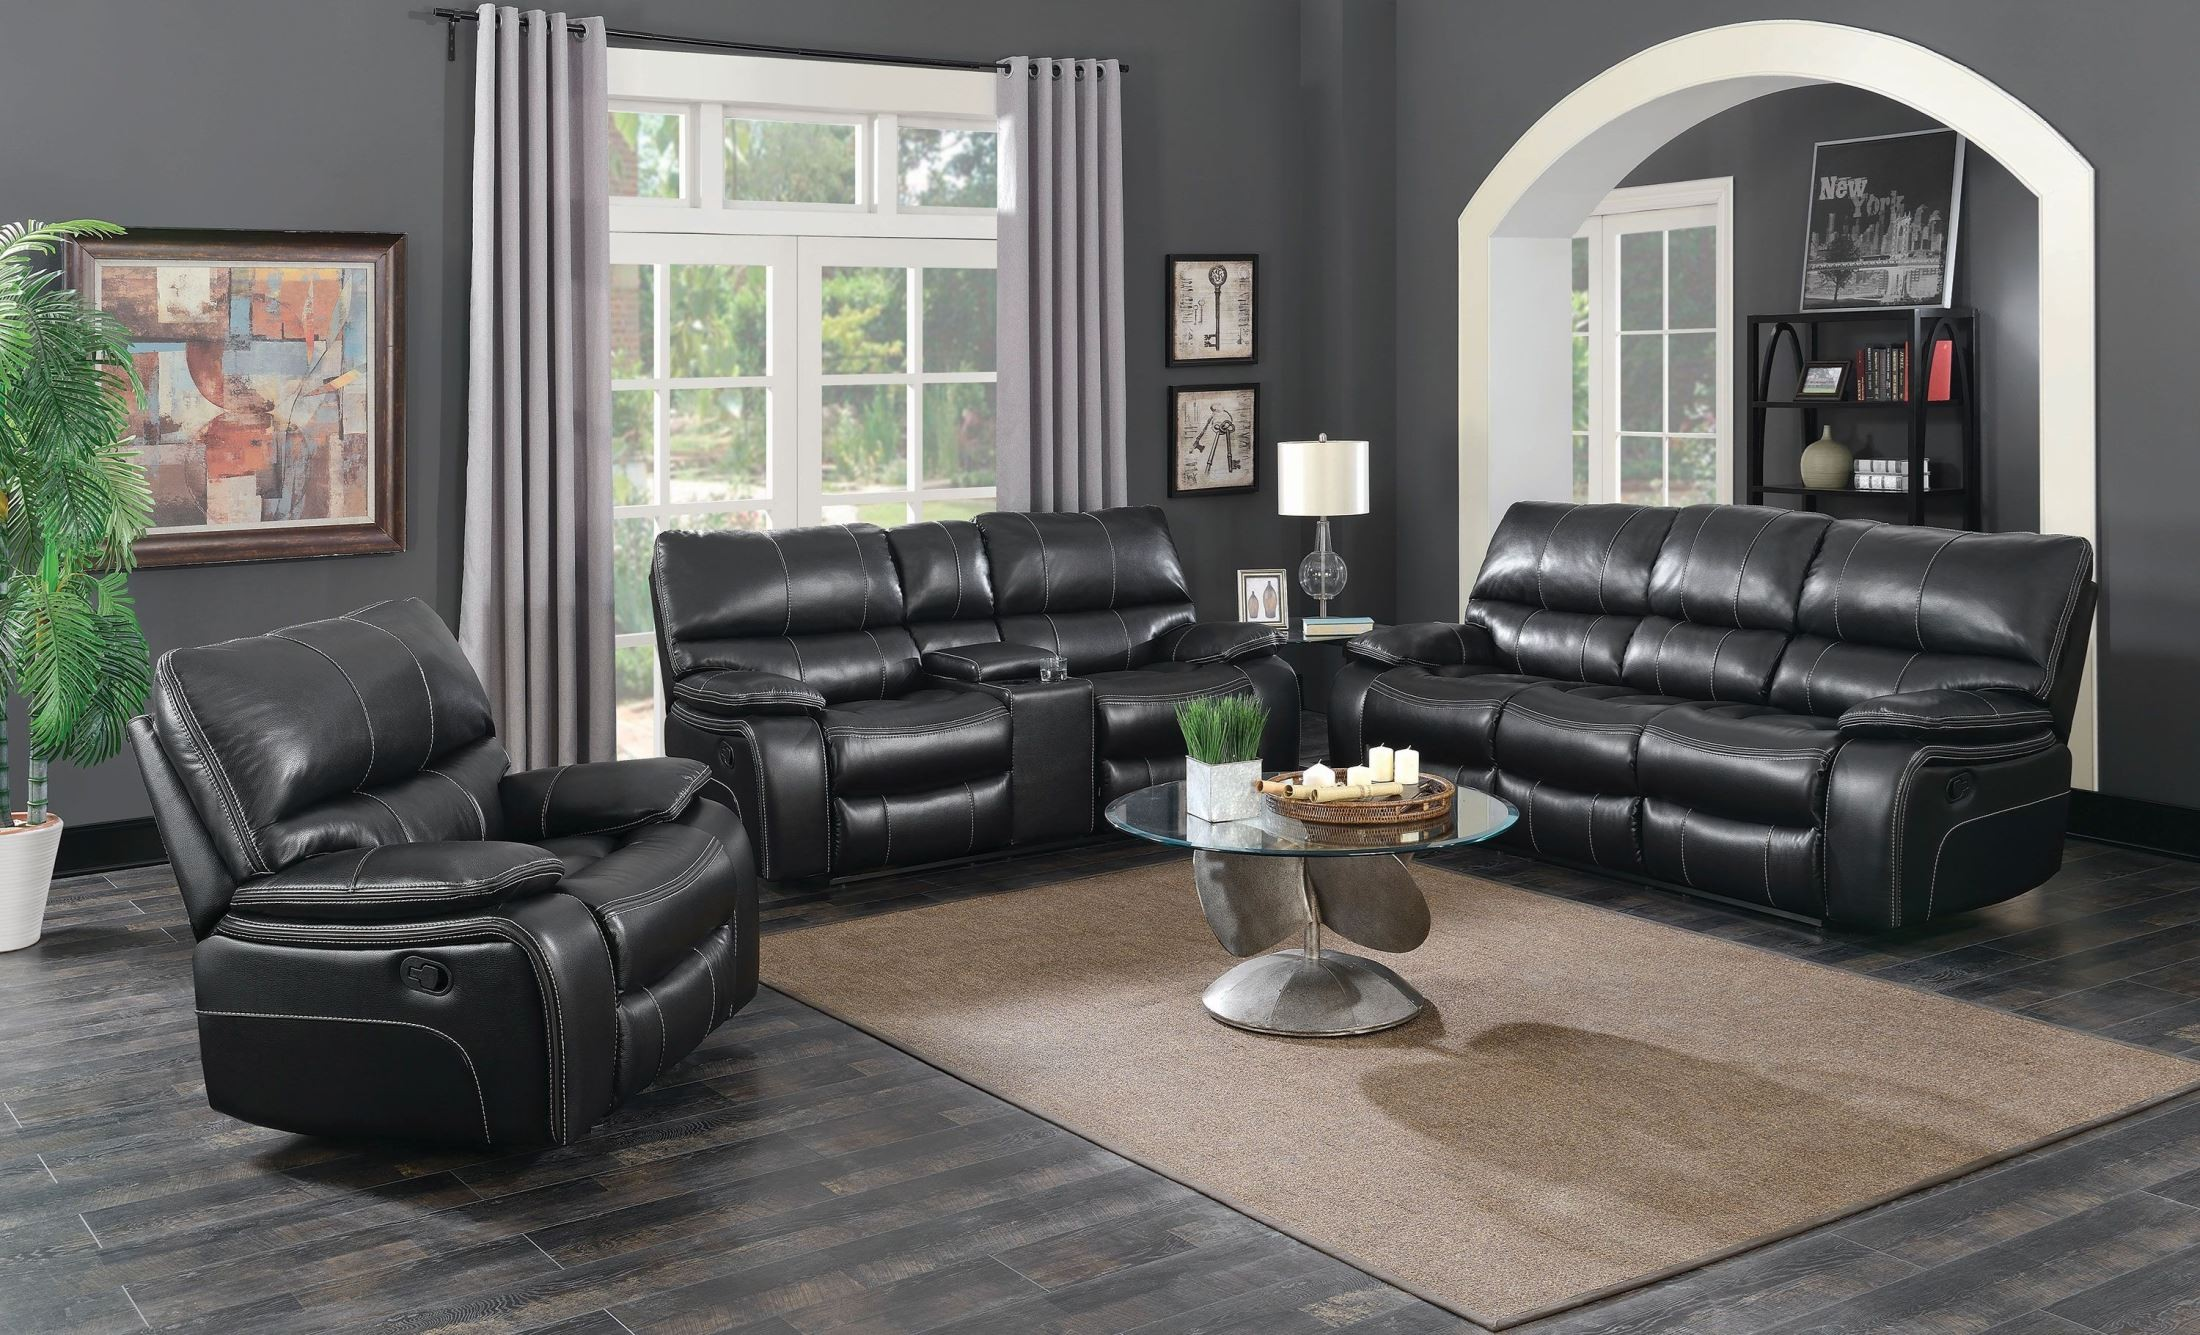 Discount Sofa And Loveseat Set Stansall Grey Living Room